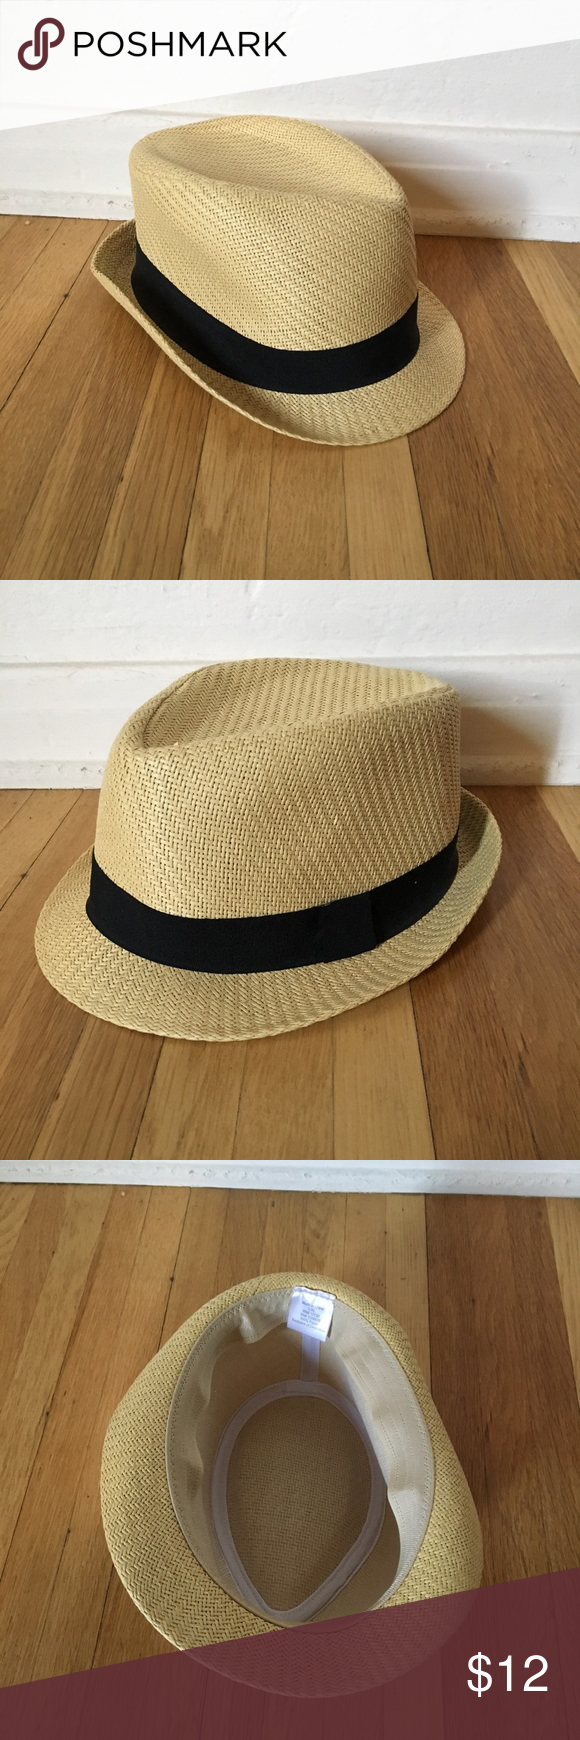 7dae45edb Selling this Jason Mraz Style Fedora Straw Hat on Poshmark! My ...